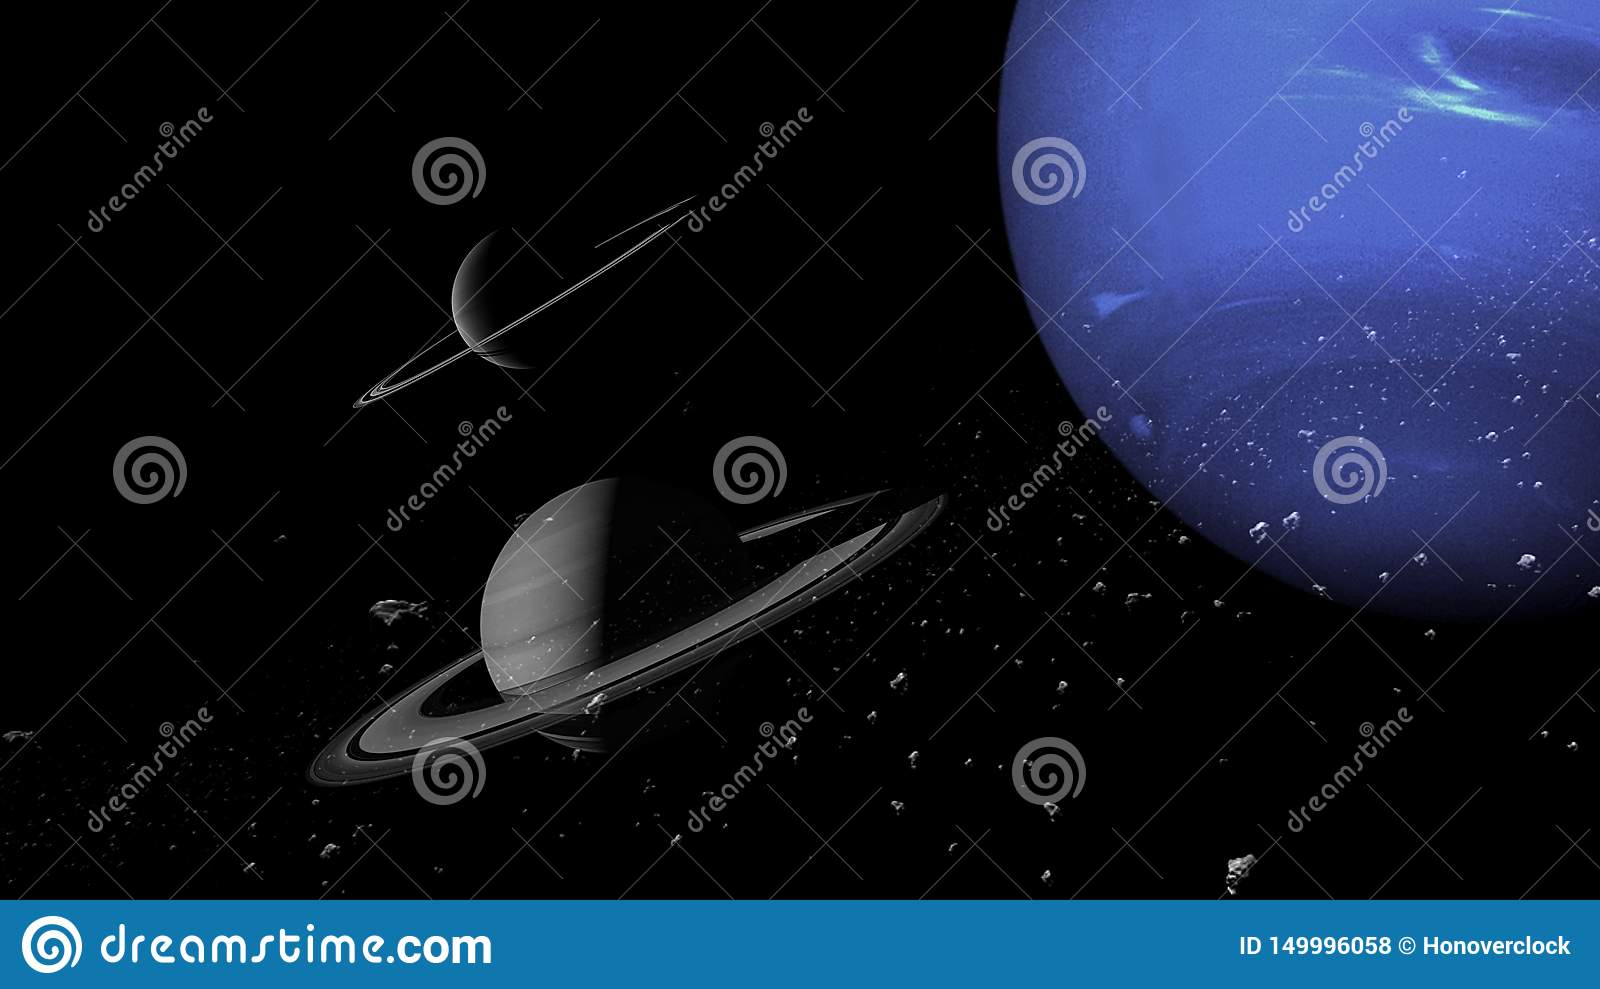 Planets and galaxy, science fiction wallpaper. Beauty of deep space. Billions of galaxy in the universe Cosmic art background, Ver